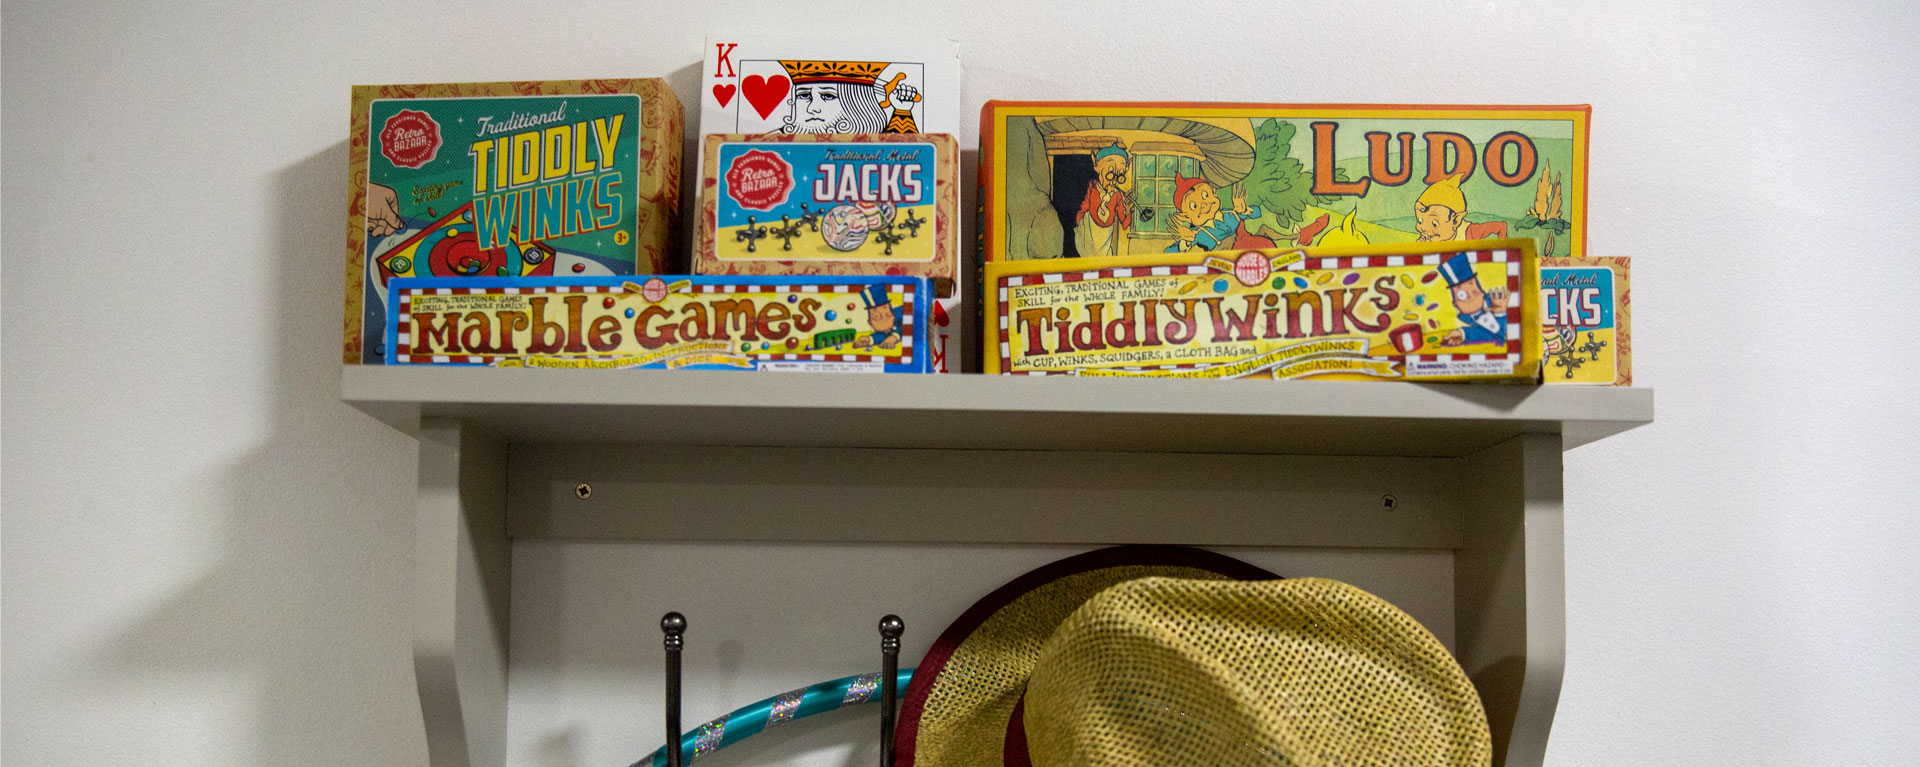 Shelf full of fun board games